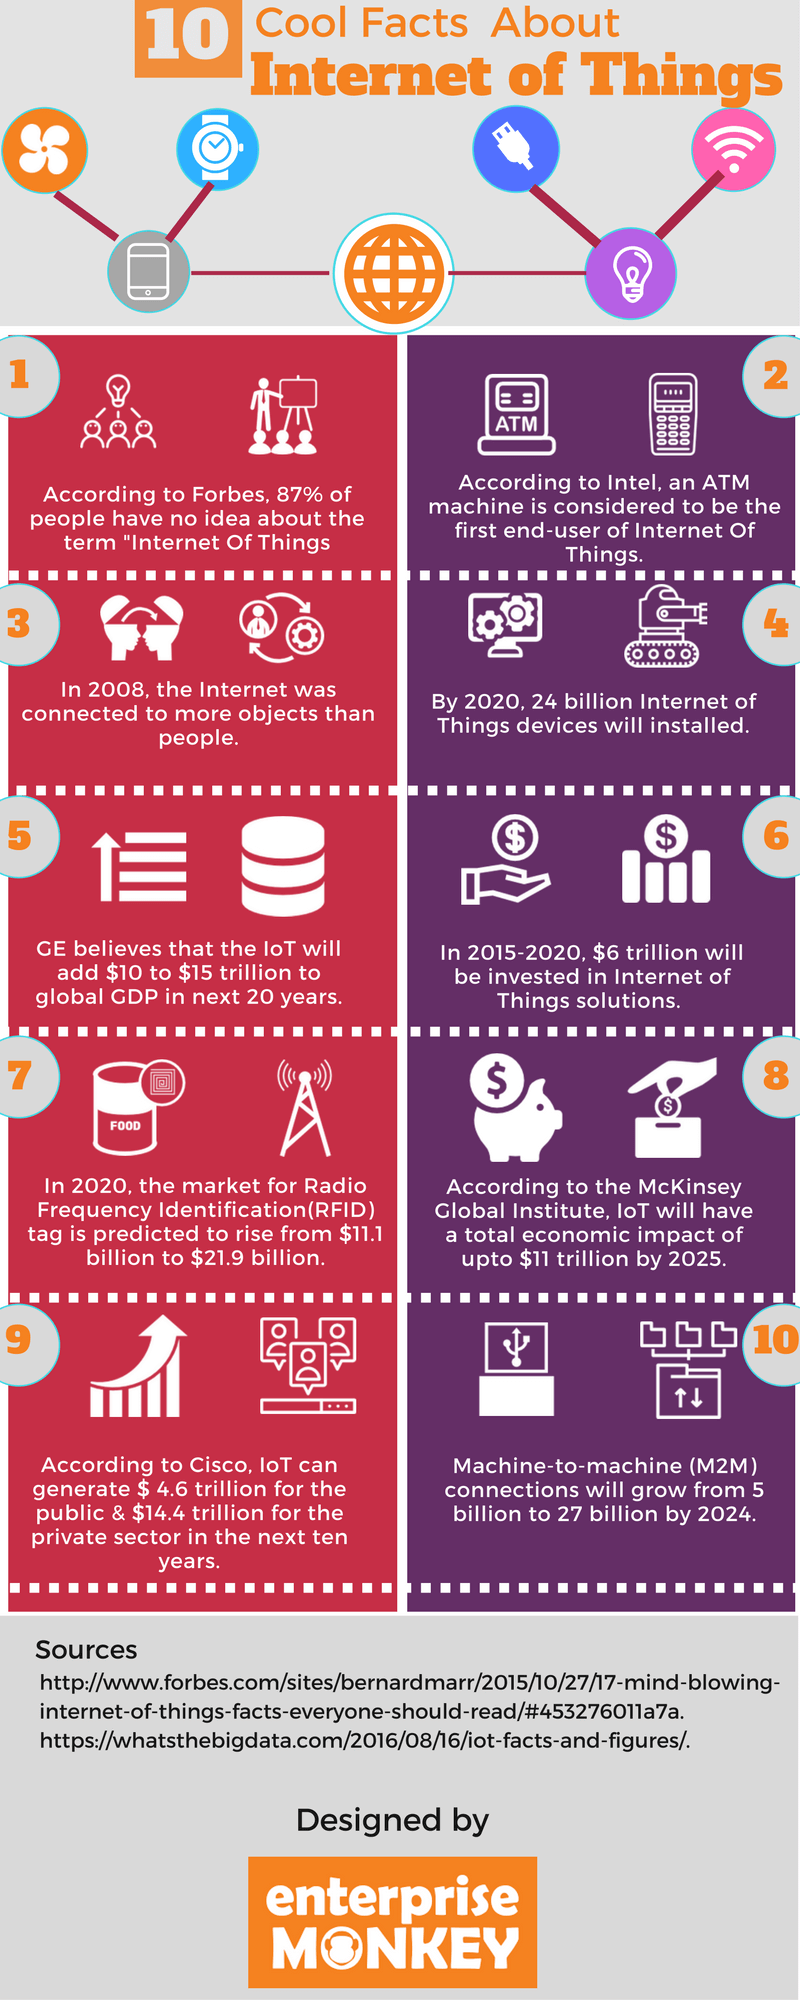 cool facts about IoT infographic